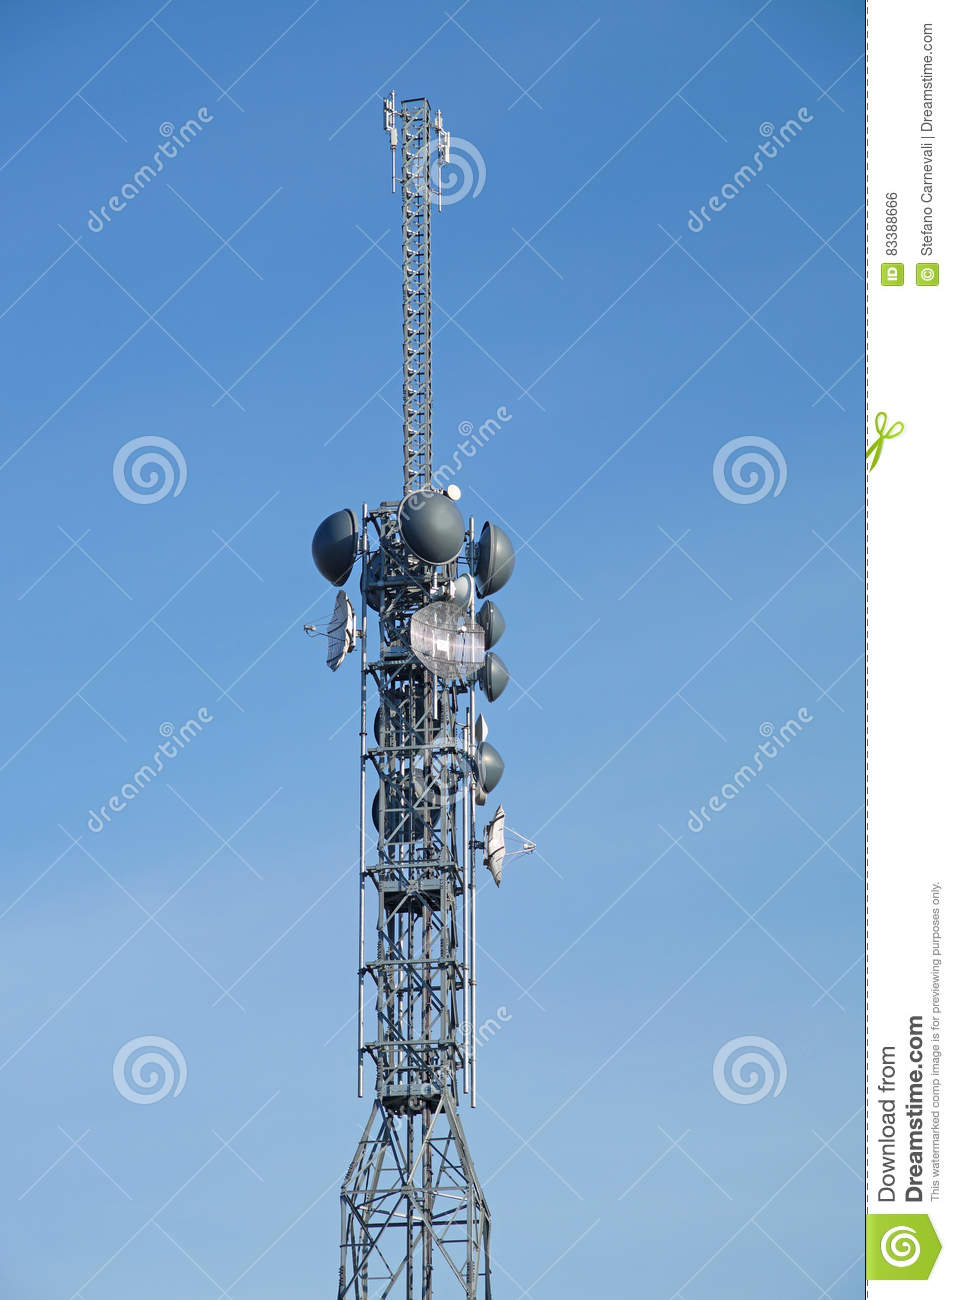 Telecommunication pole tower television antennas with blue sky